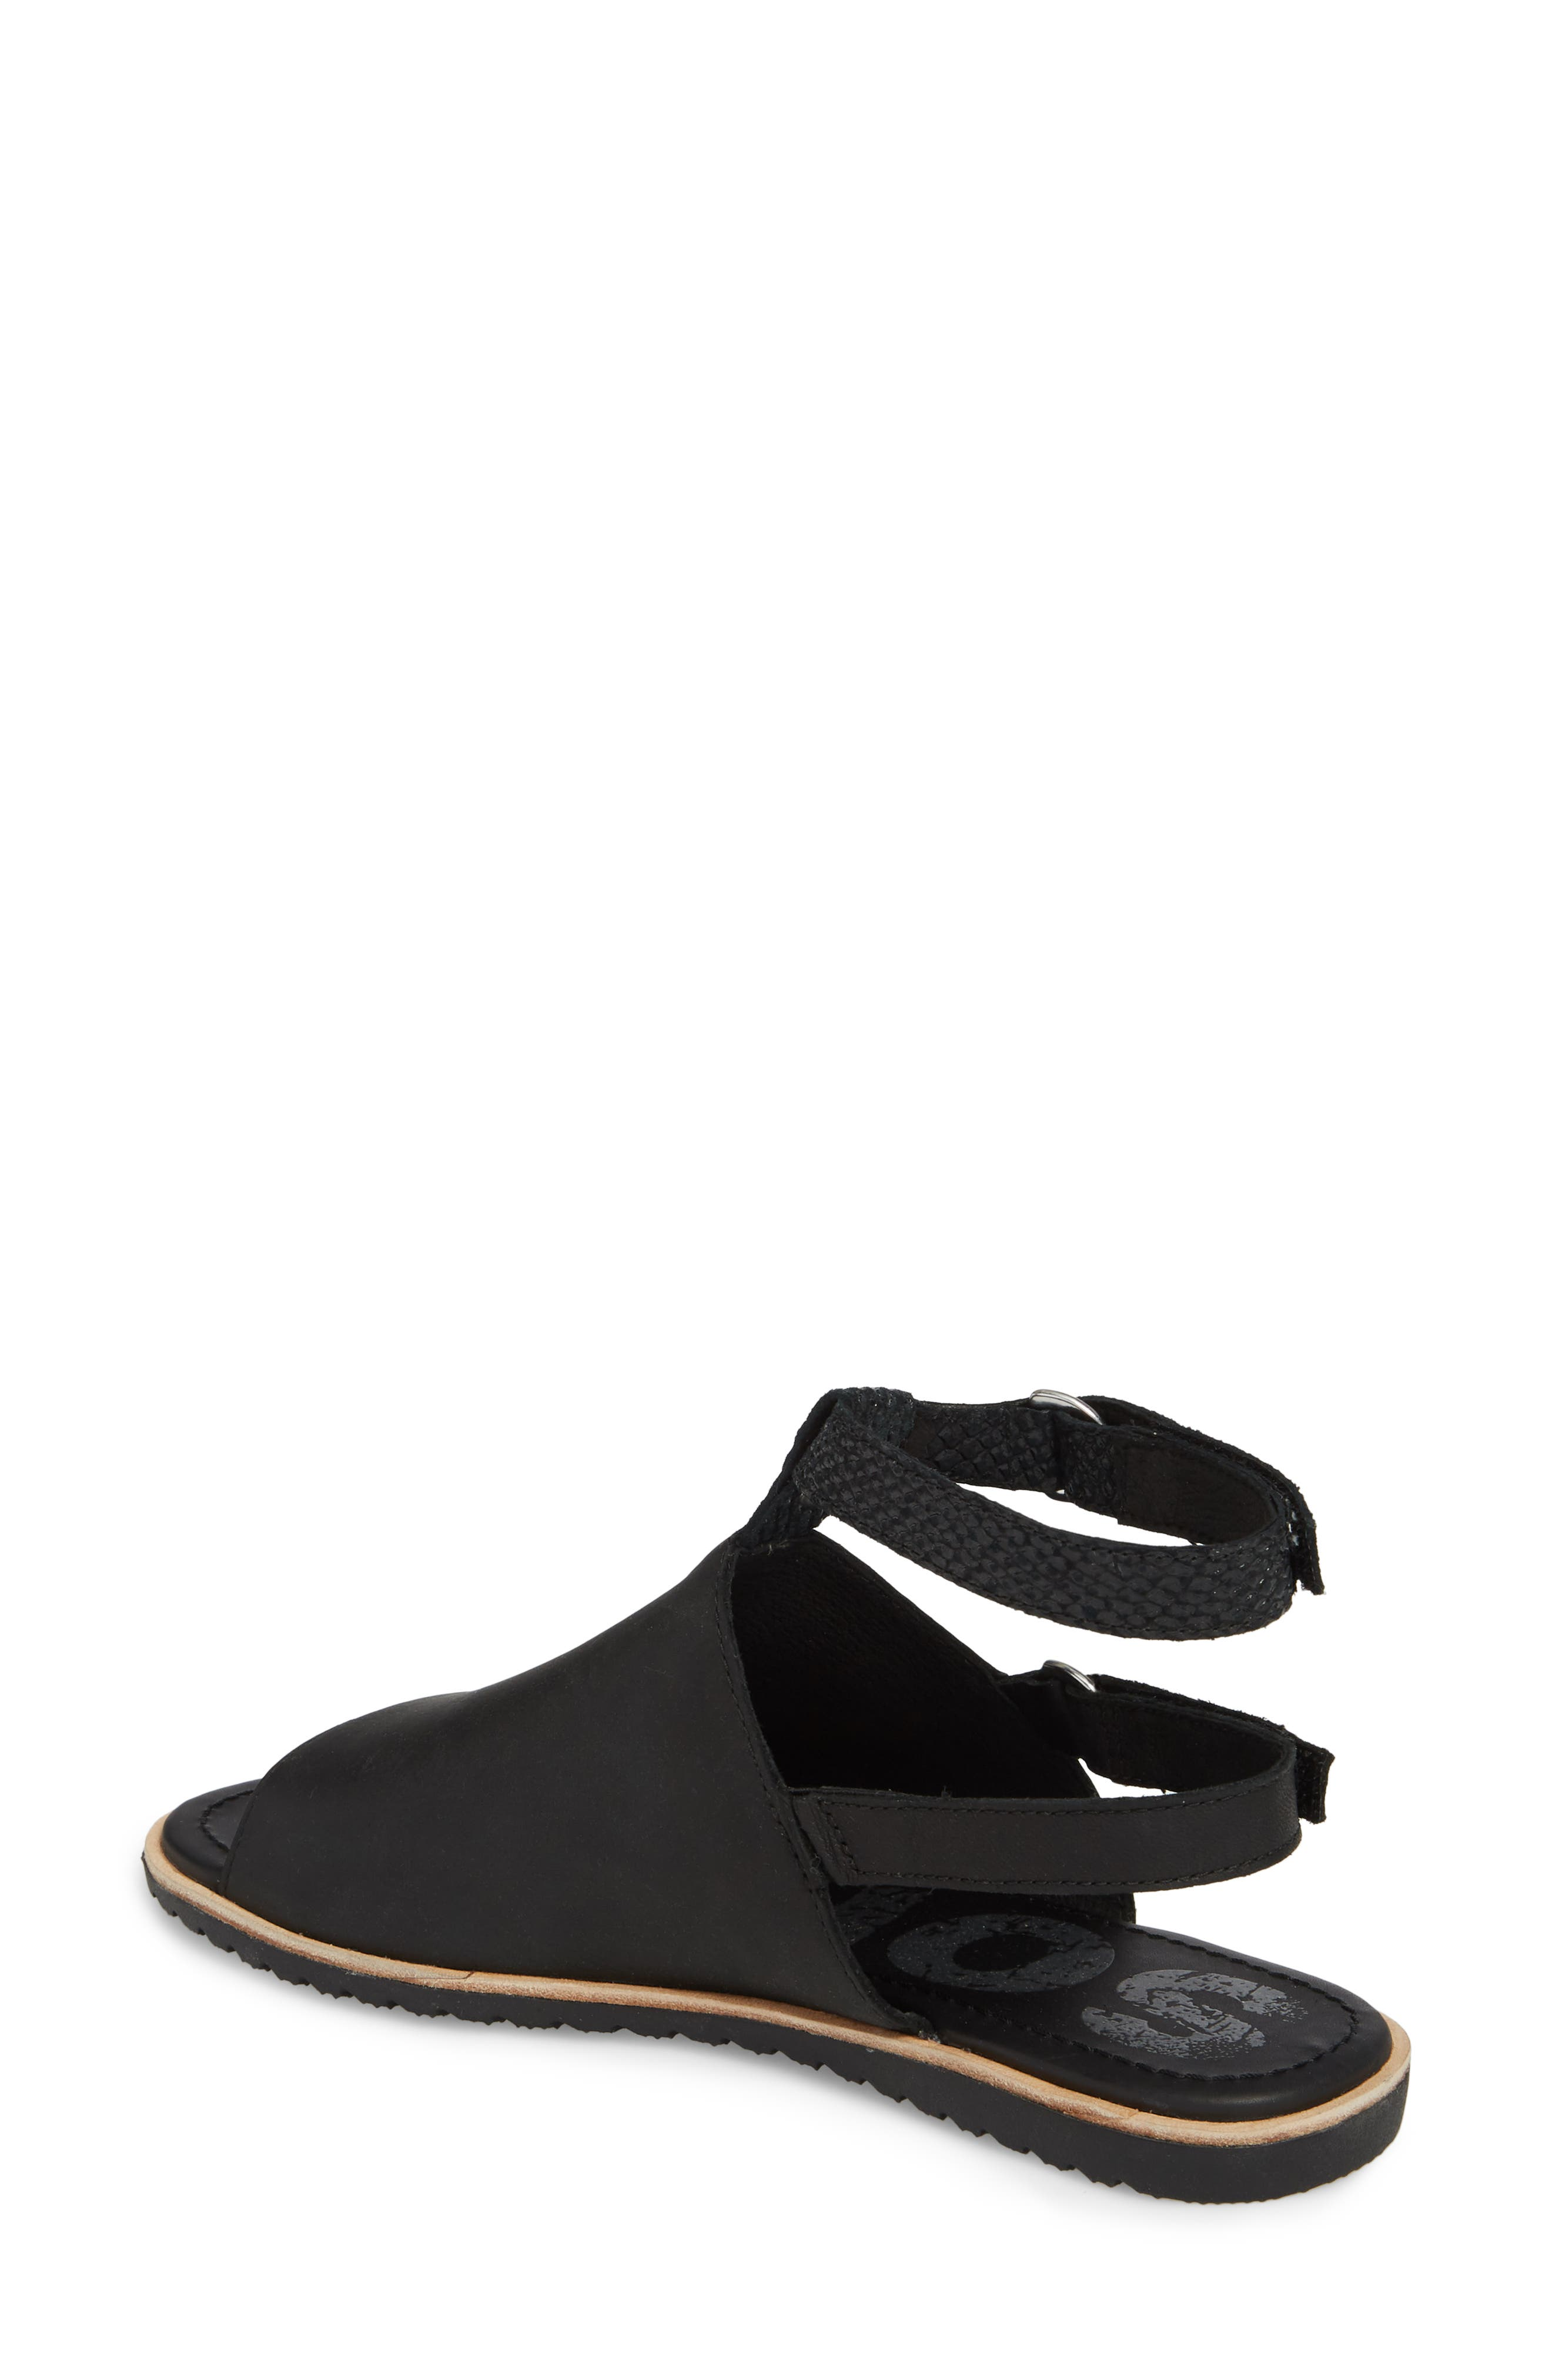 Ella Strappy Sandal,                             Alternate thumbnail 2, color,                             Black